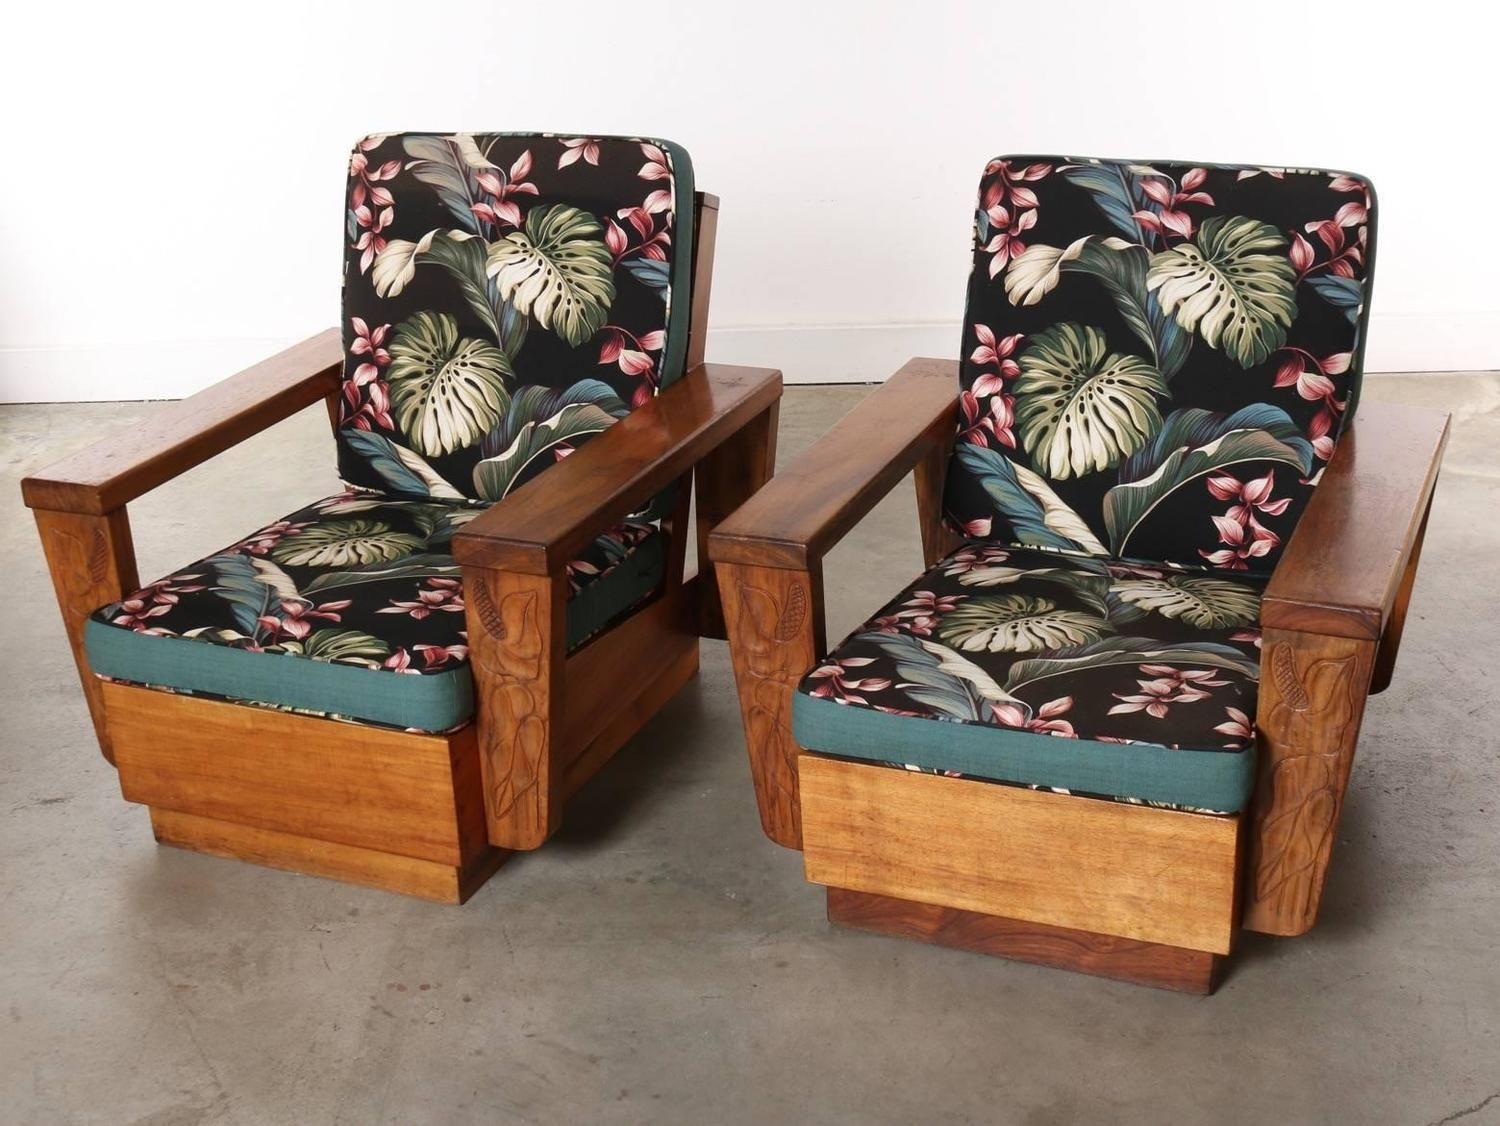 Pair Of 1940s Hawaiian Koa Wood Club Chair From A Unique Collection Antique And